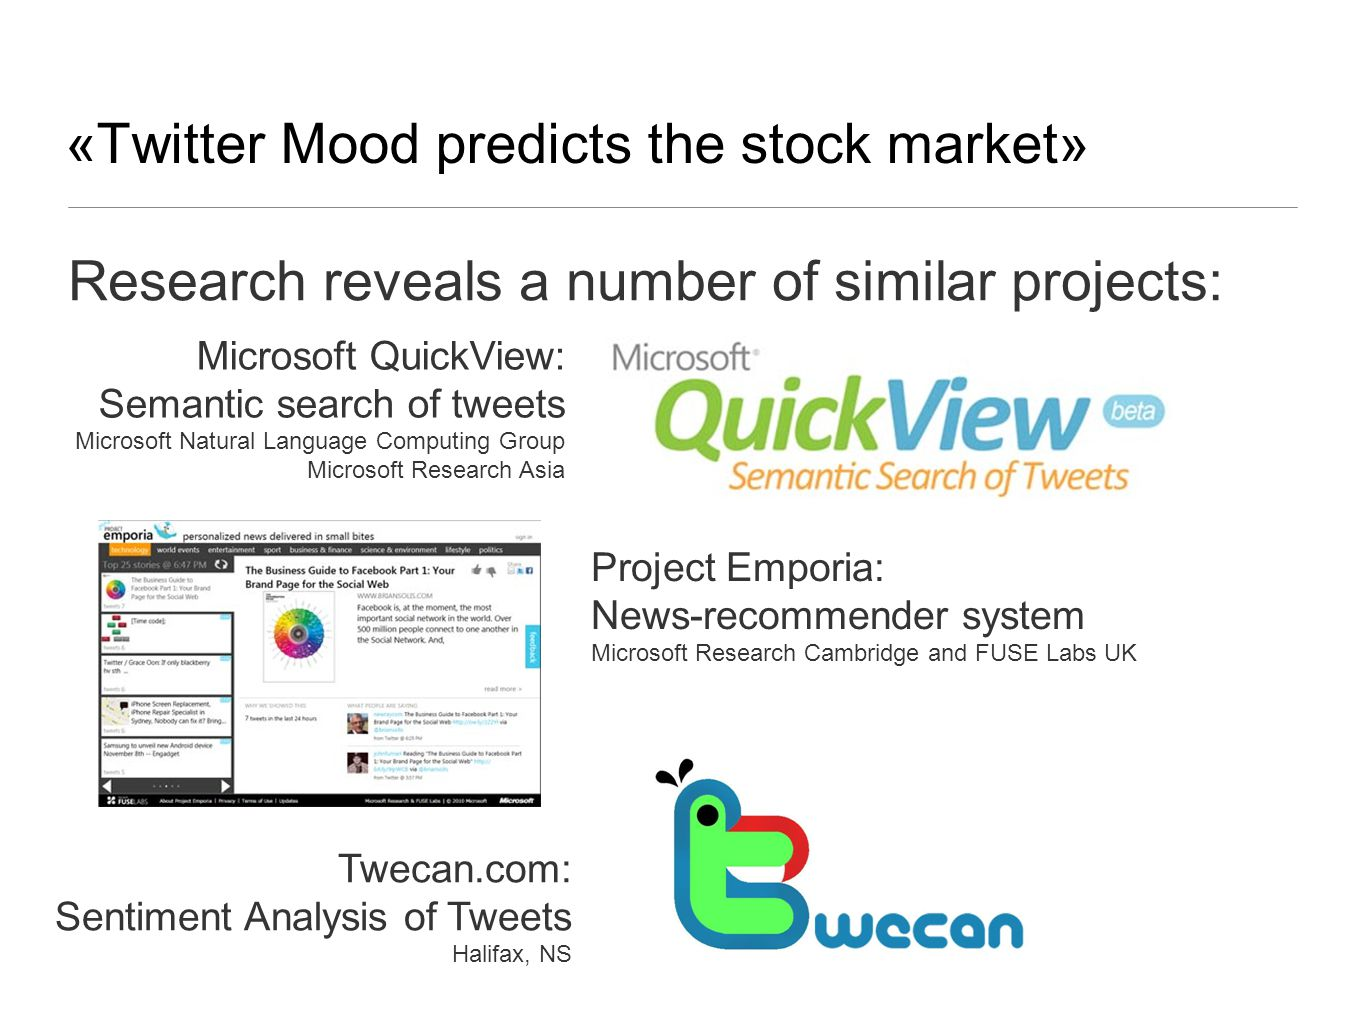 «Twitter Mood predicts the stock market» Research reveals a number of similar projects: Microsoft QuickView: Semantic search of tweets Microsoft Natural Language Computing Group Microsoft Research Asia Project Emporia: News-recommender system Microsoft Research Cambridge and FUSE Labs UK Twecan.com: Sentiment Analysis of Tweets Halifax, NS